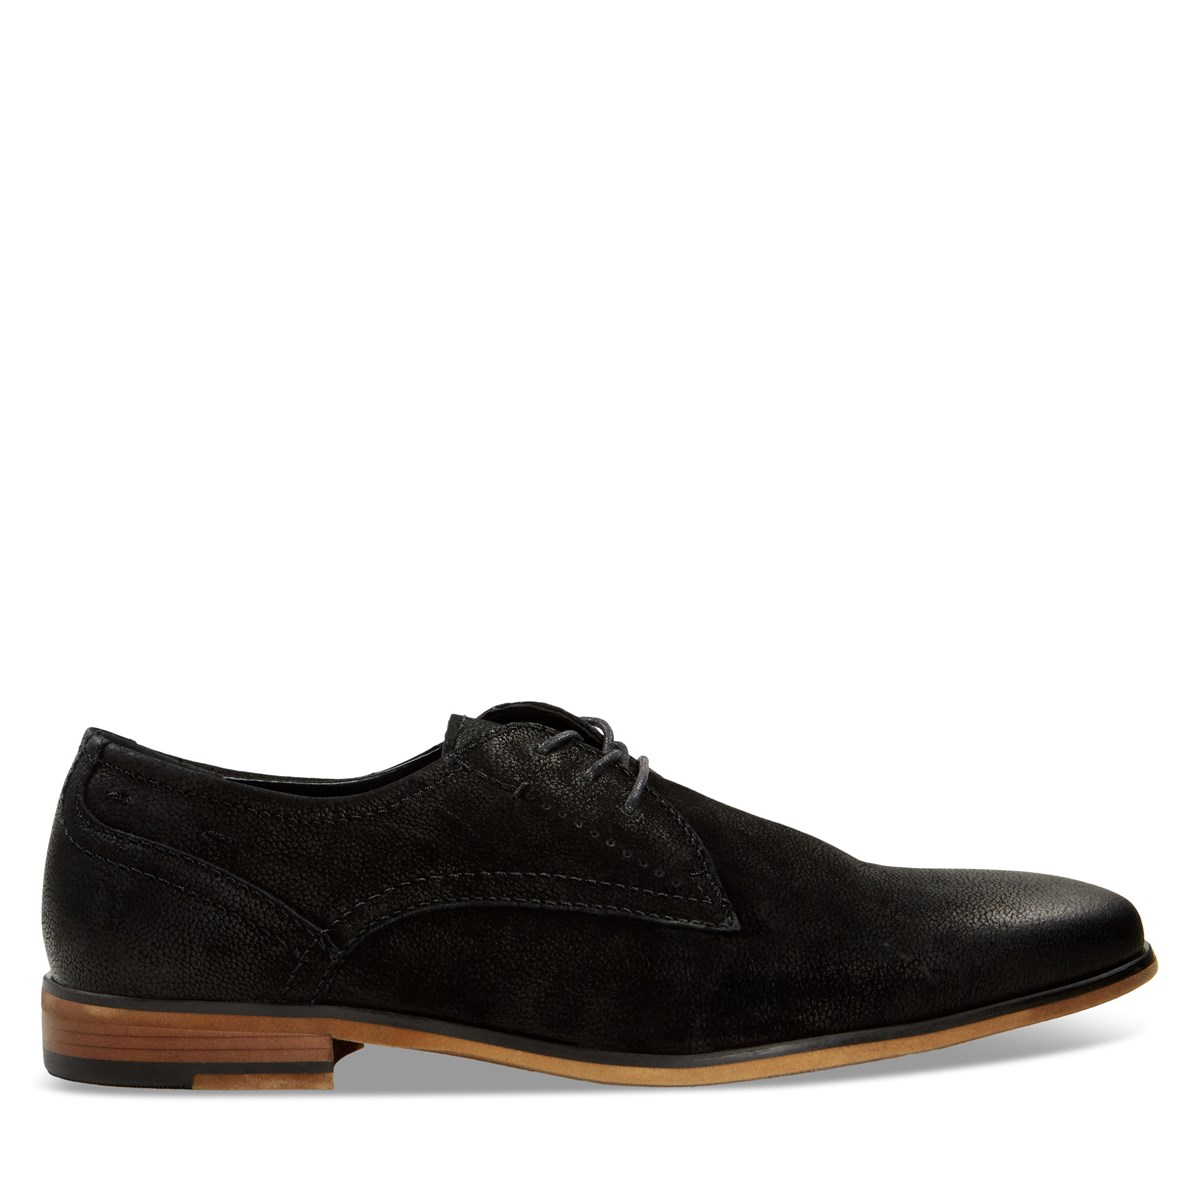 Men's Derby Shoes in Black